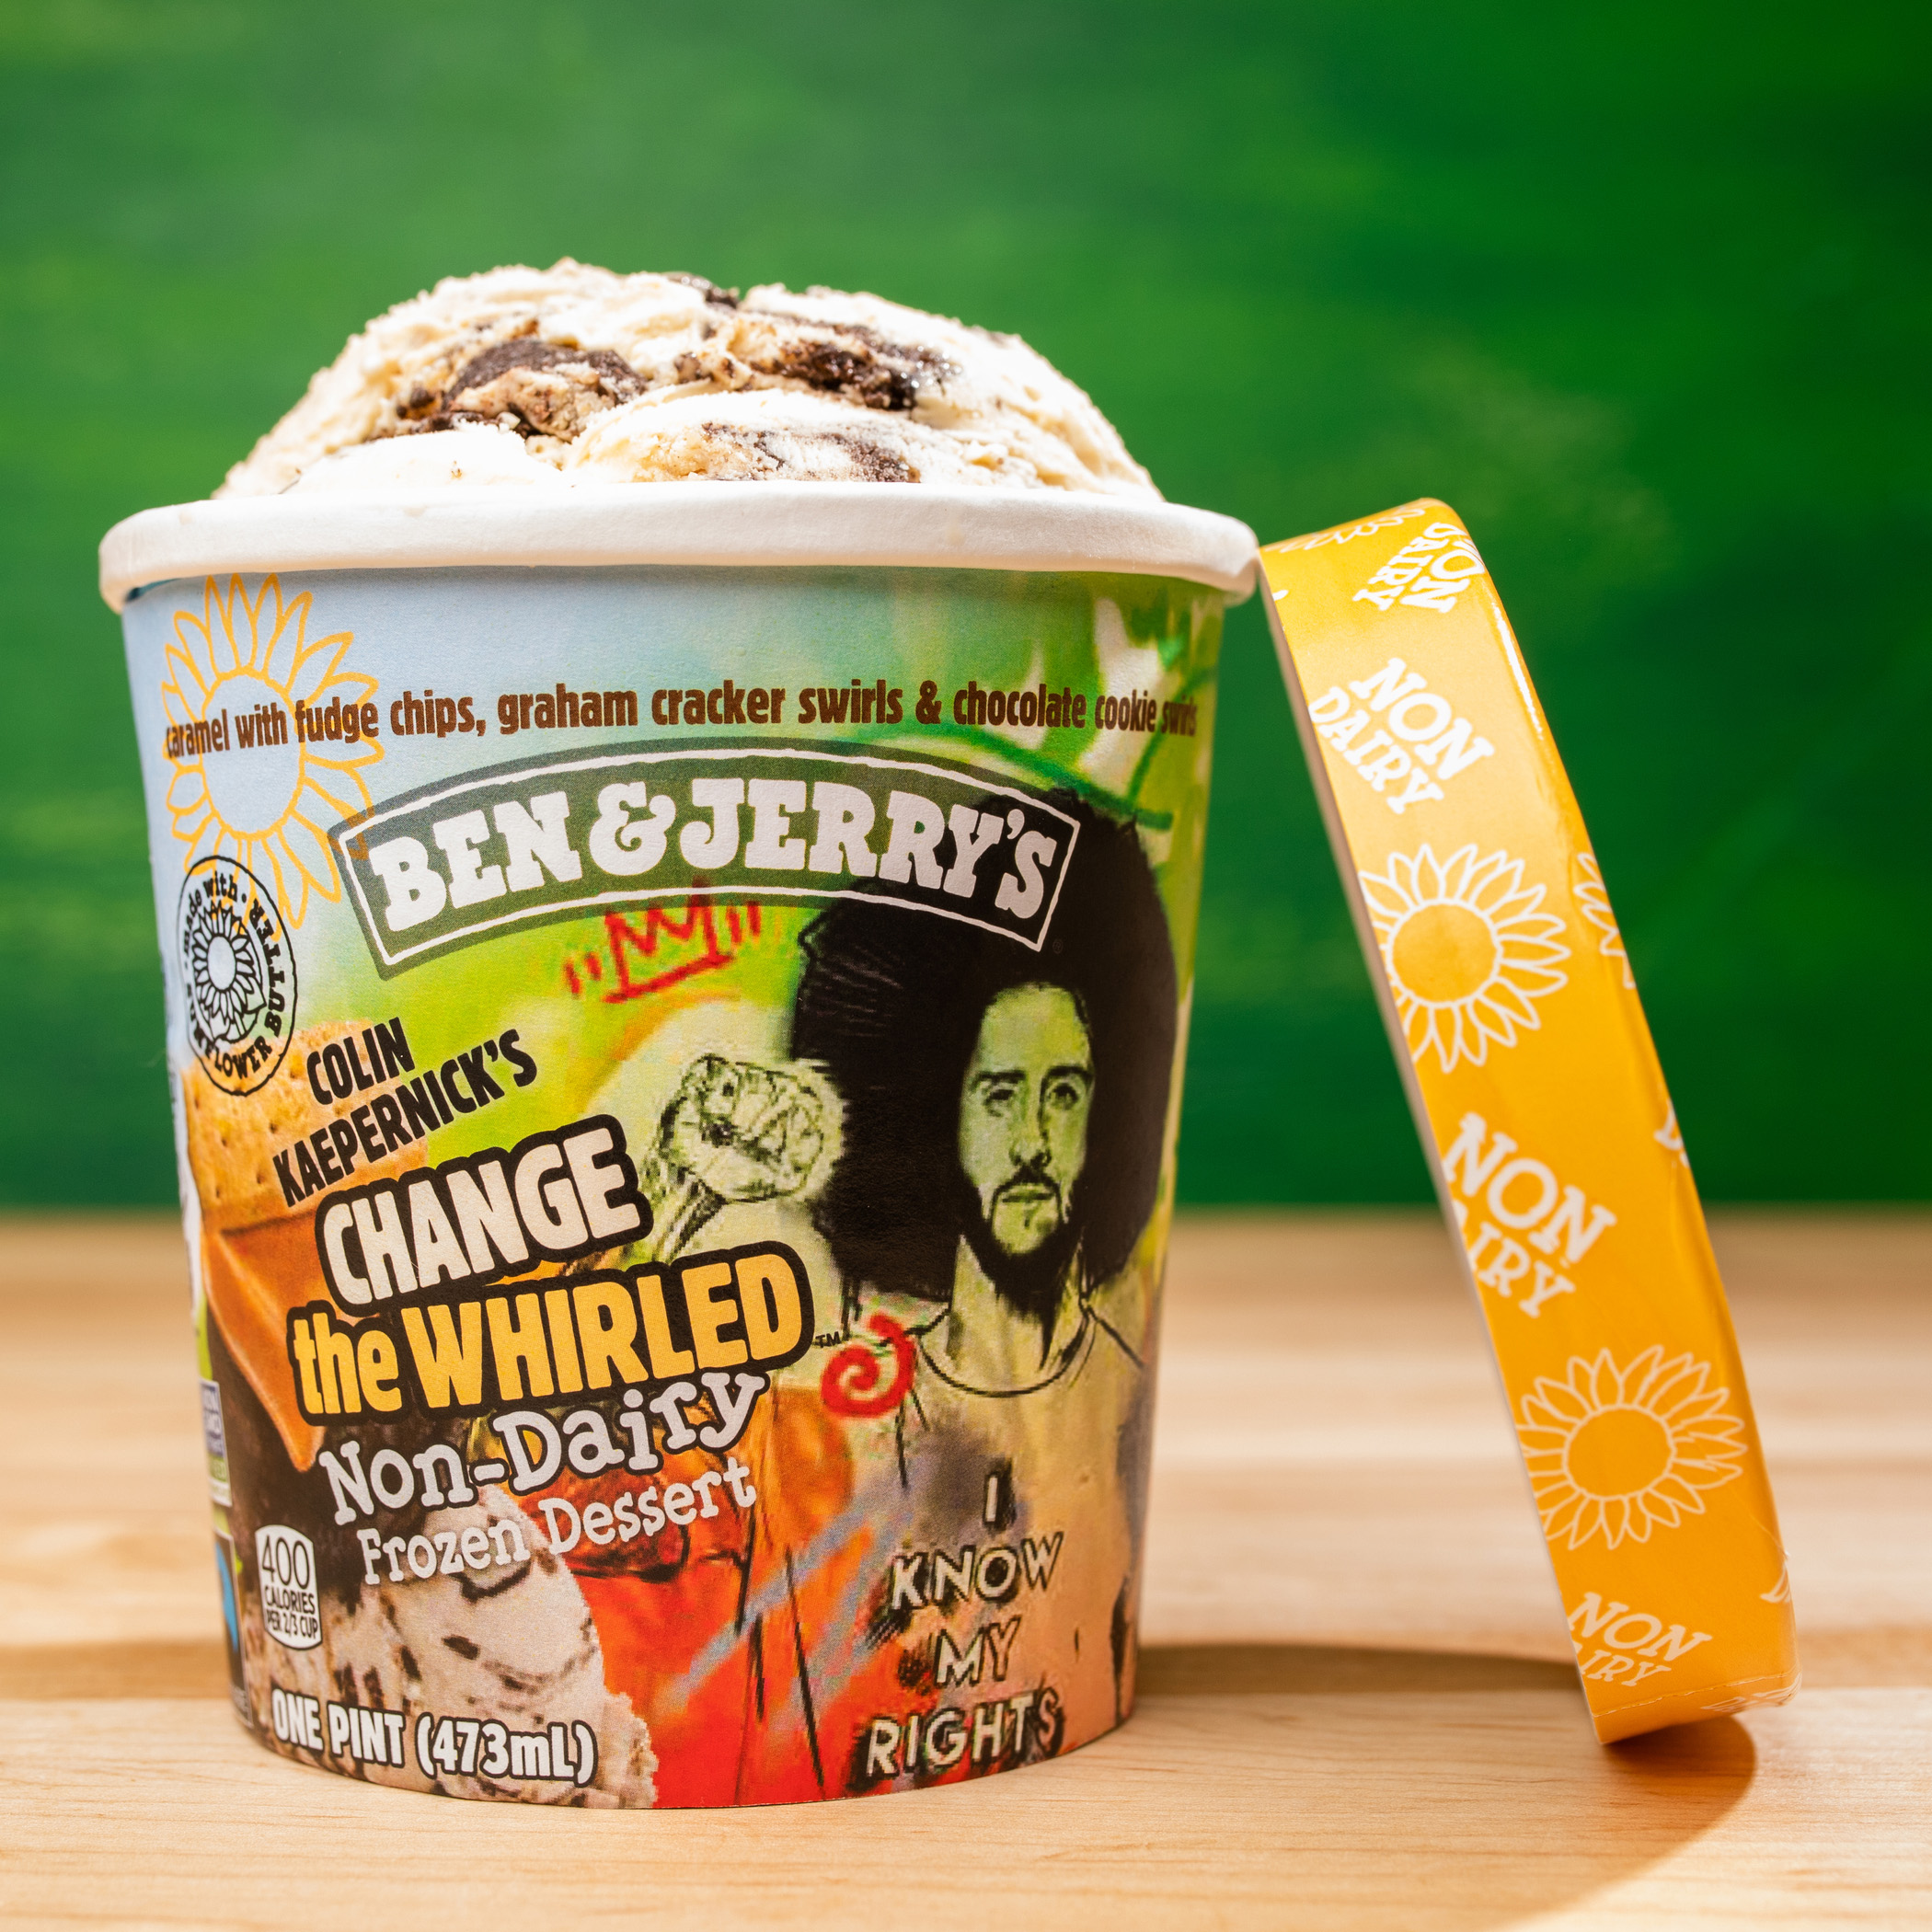 Colin Kaepernick and Ben & Jerry's Partner on Vegan Ice Cream For Great Cause